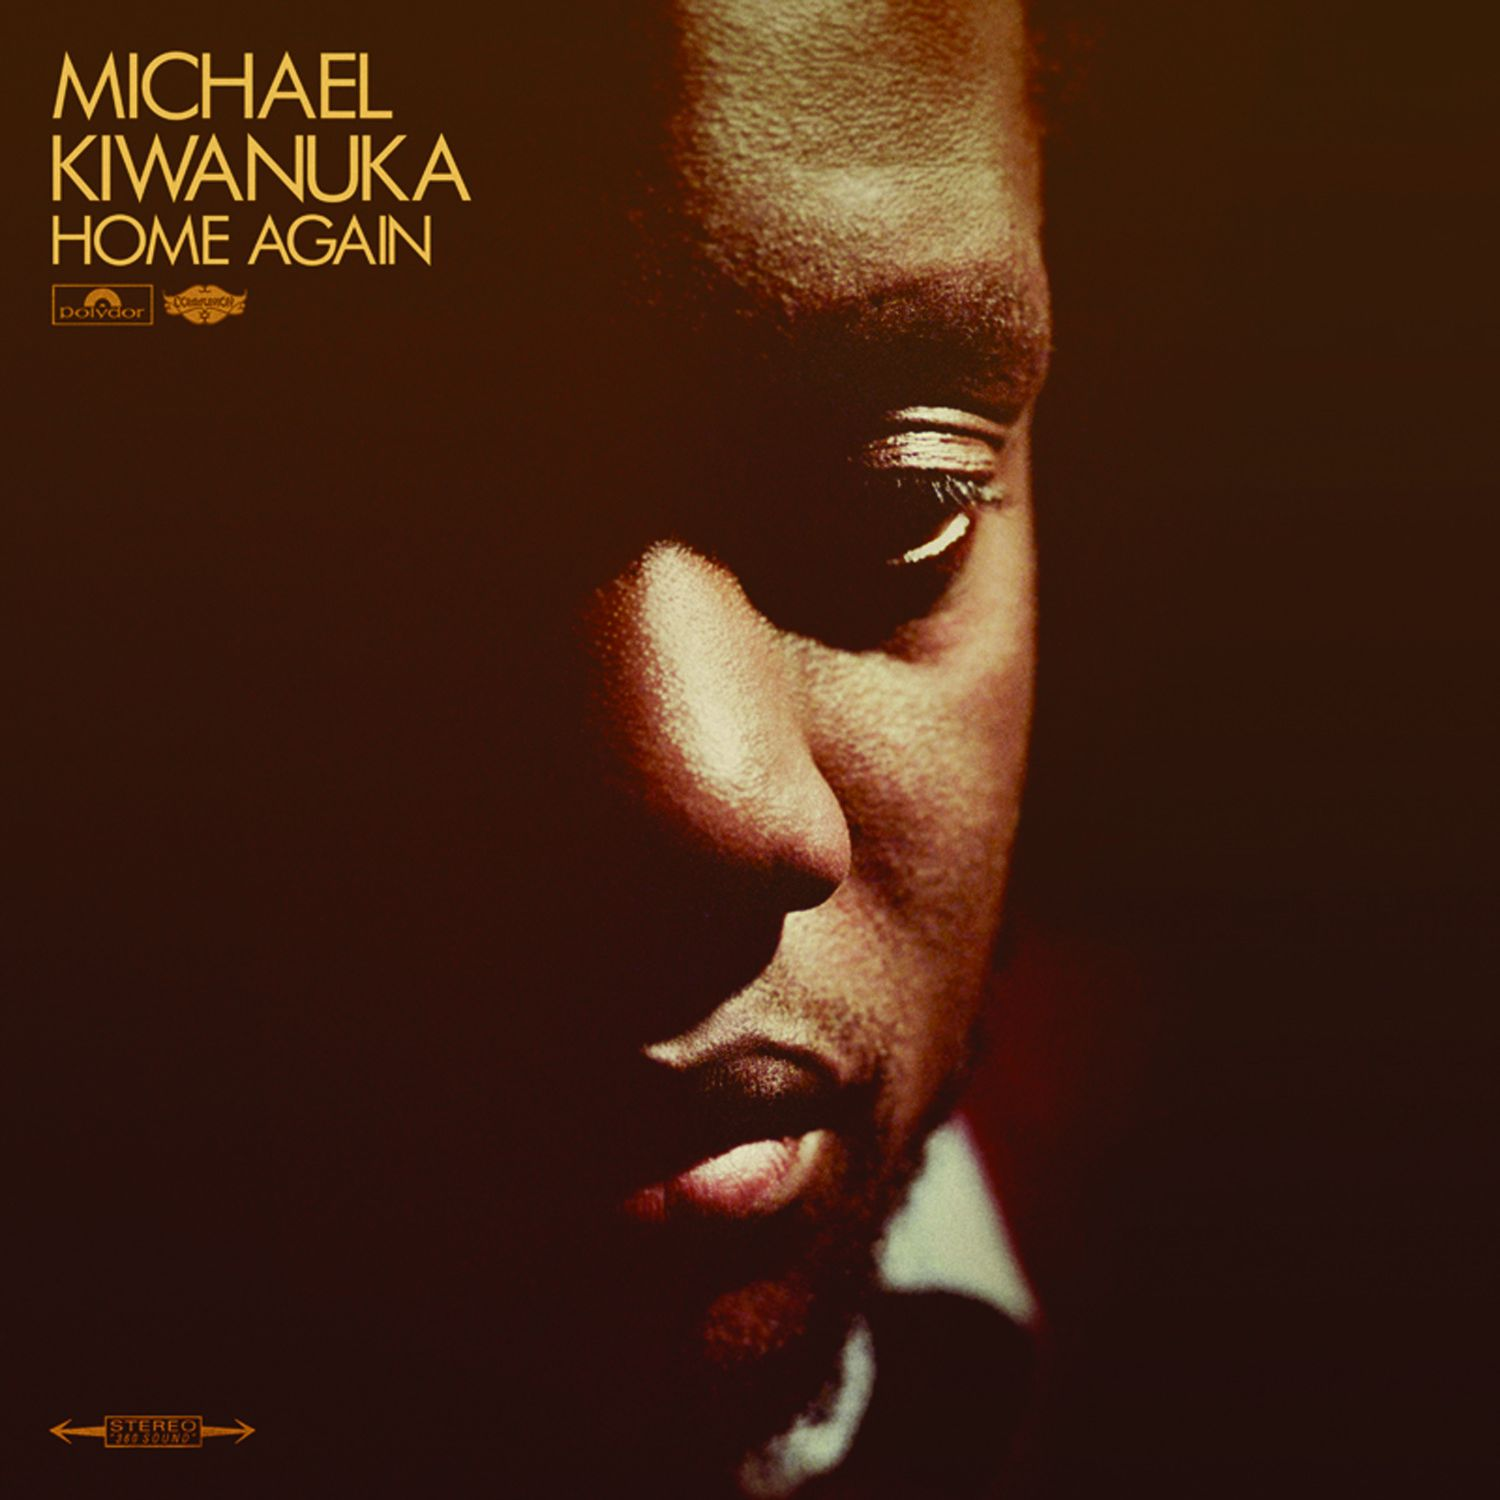 Michael Kiwanuka – Home Again (2012, Polydor/Communion Records)